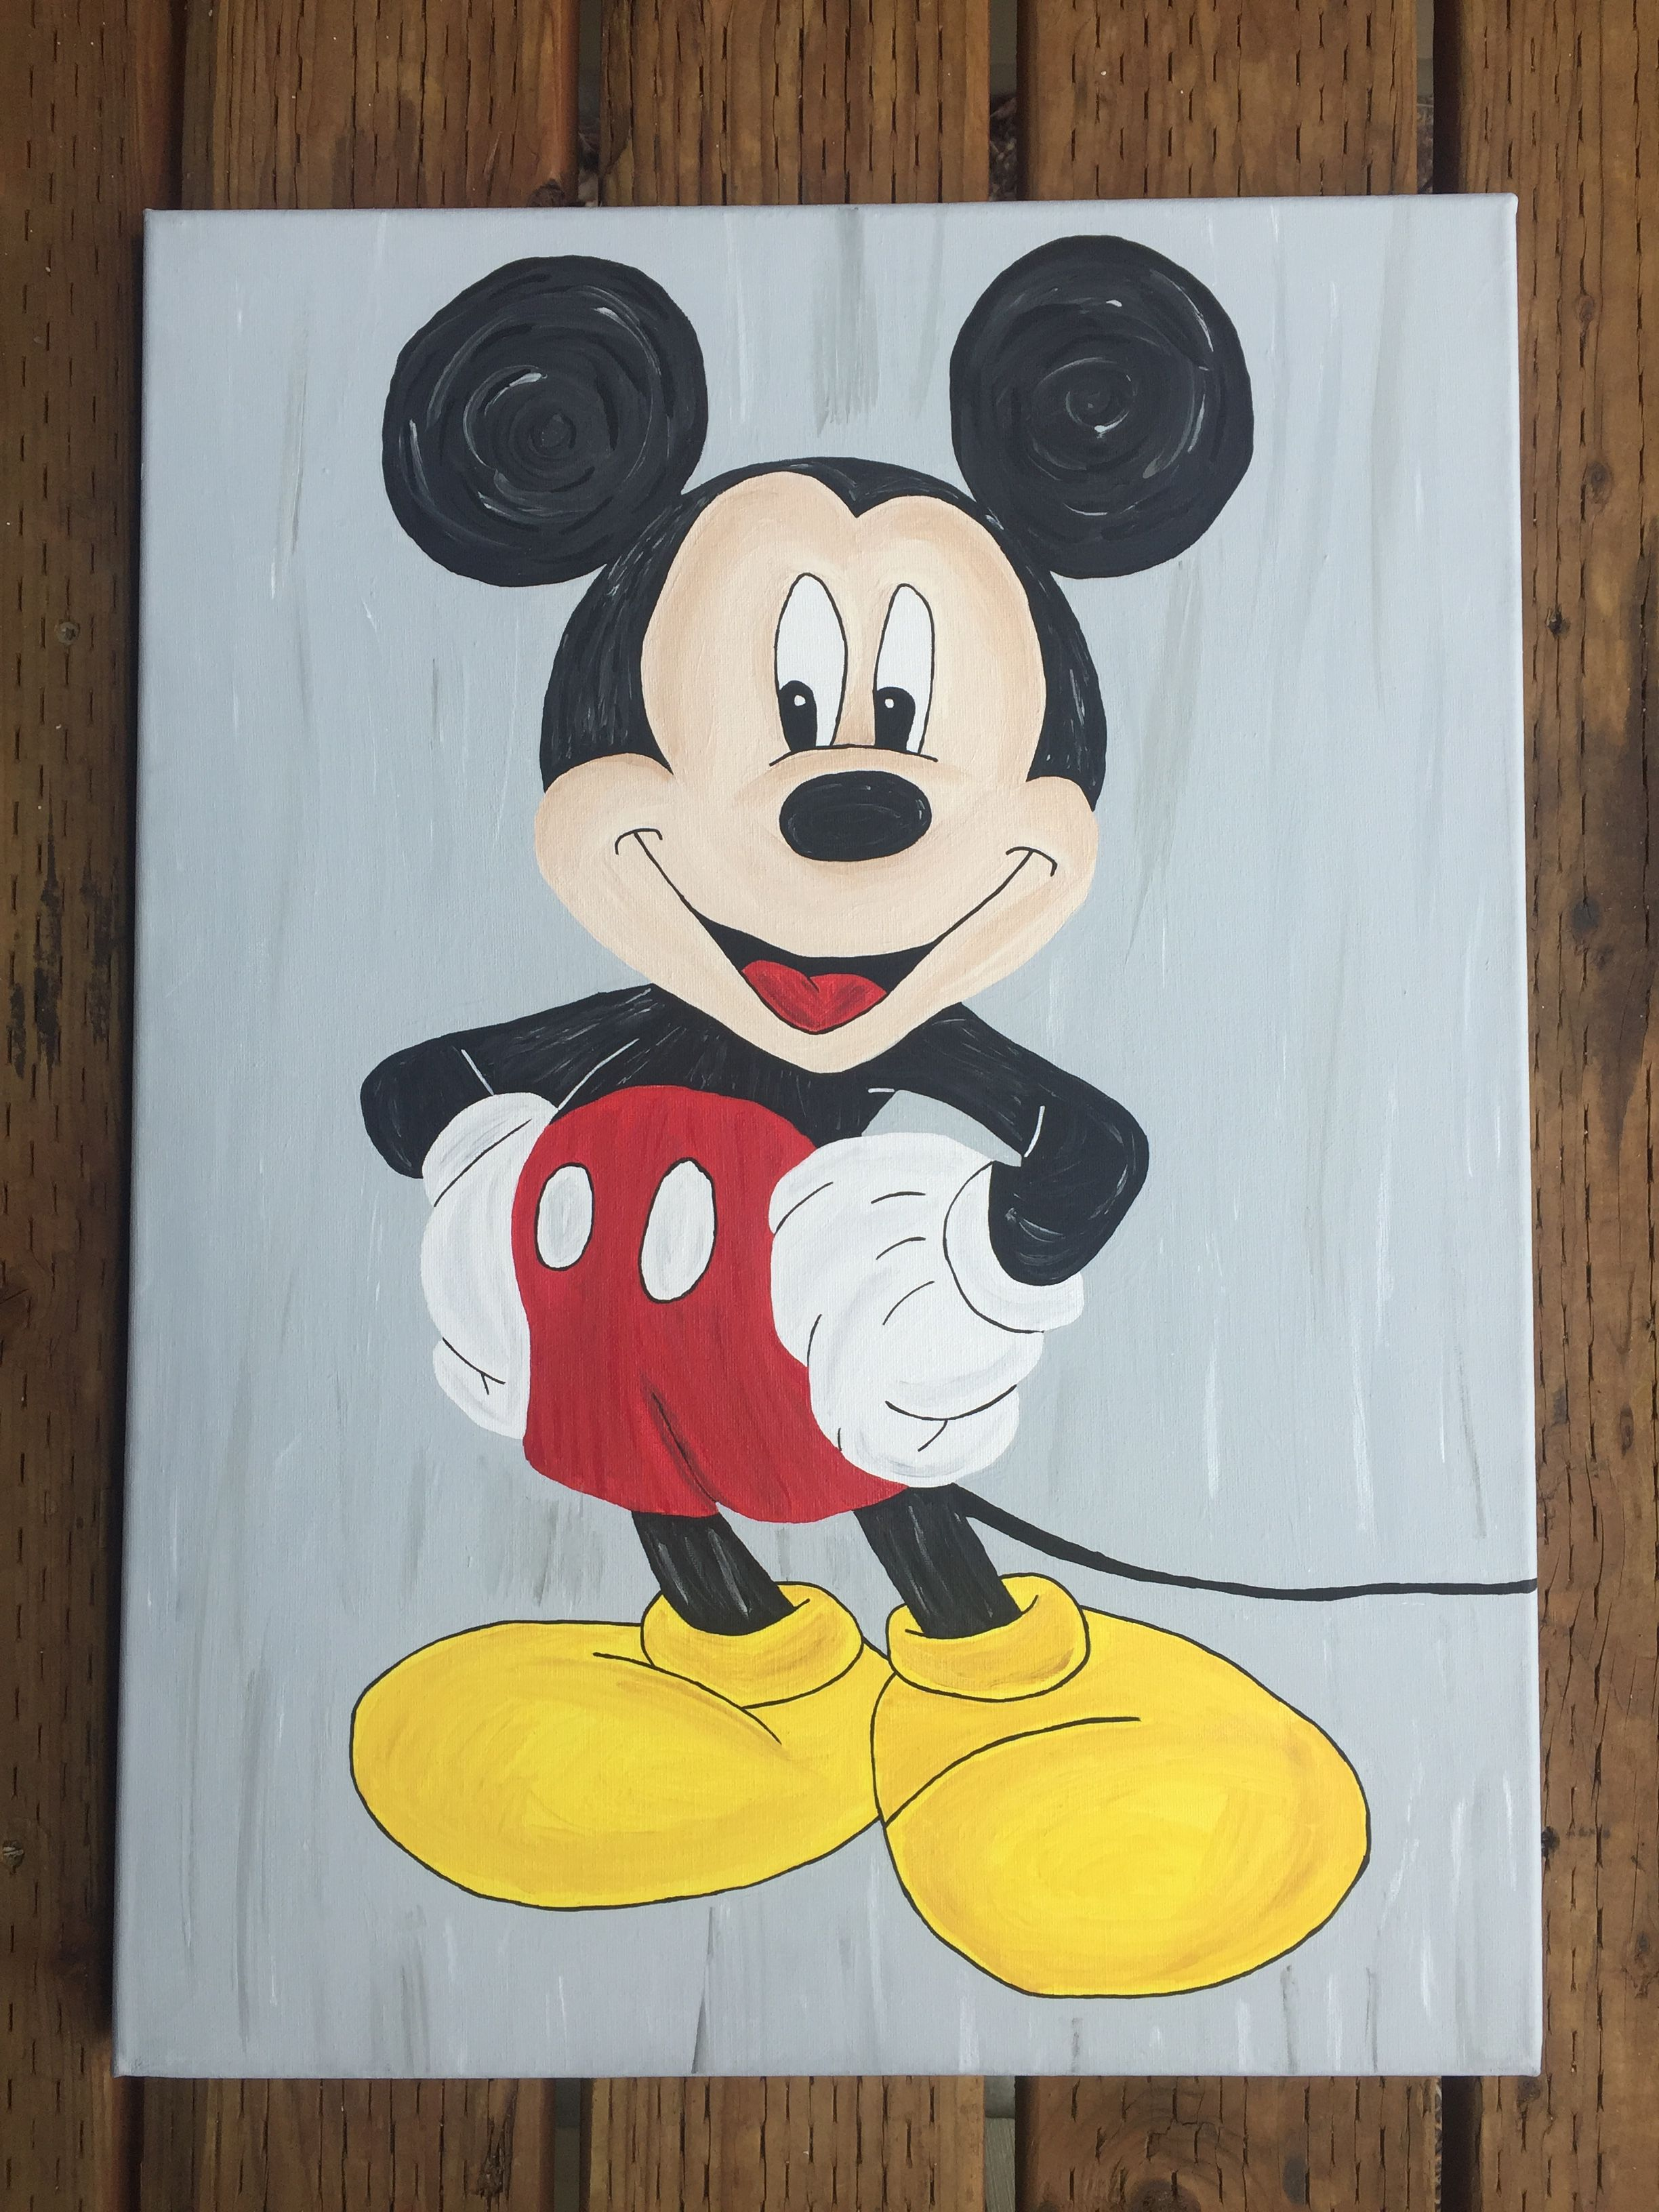 DIY Mickey Mouse acrylic painting | Diy painting, Painting ...